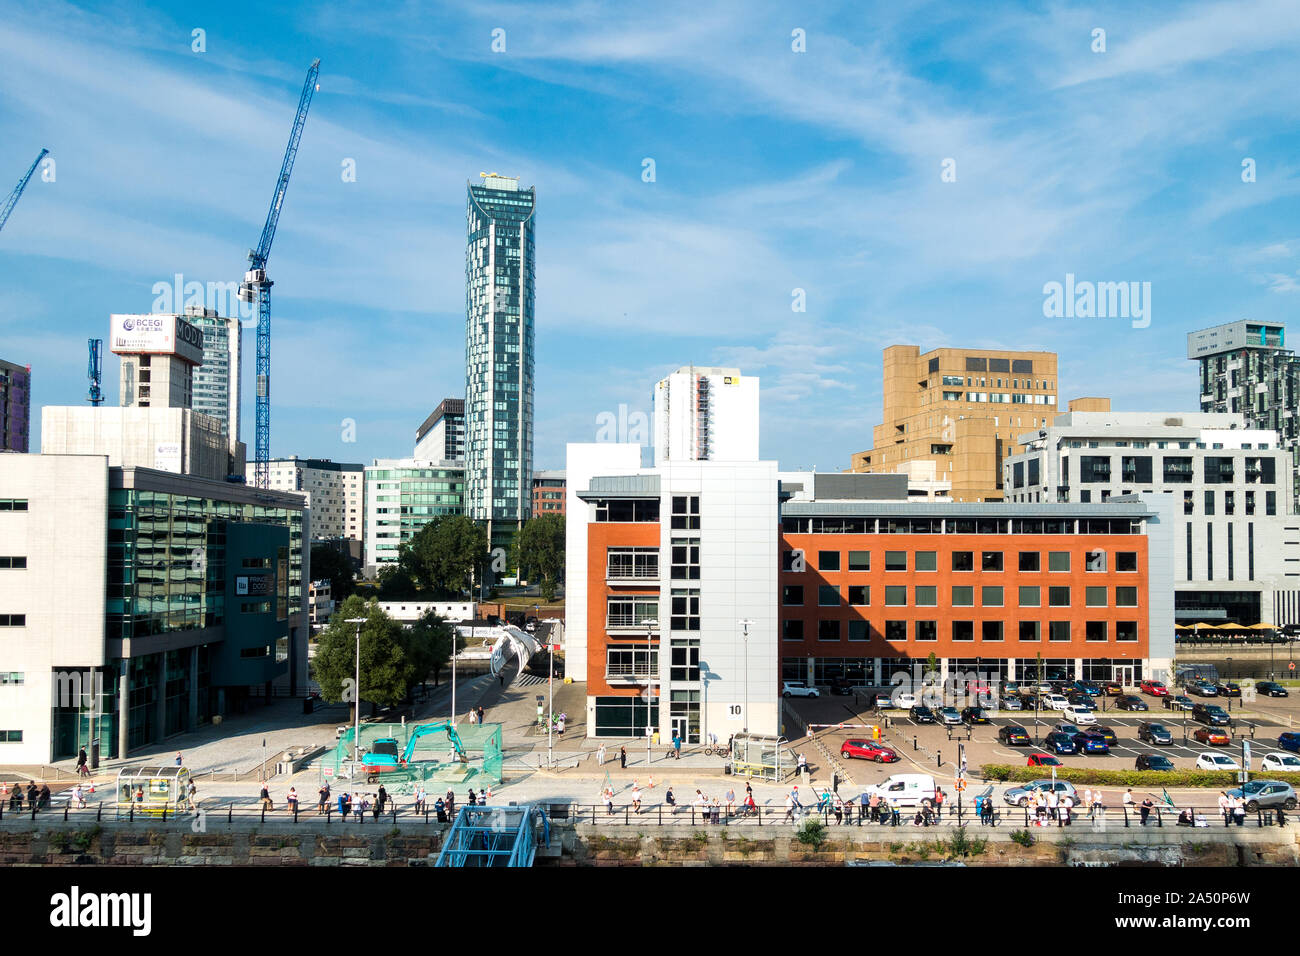 Liverpool. England, Merseyside, new modern buildings on the  waterfront. Stock Photo